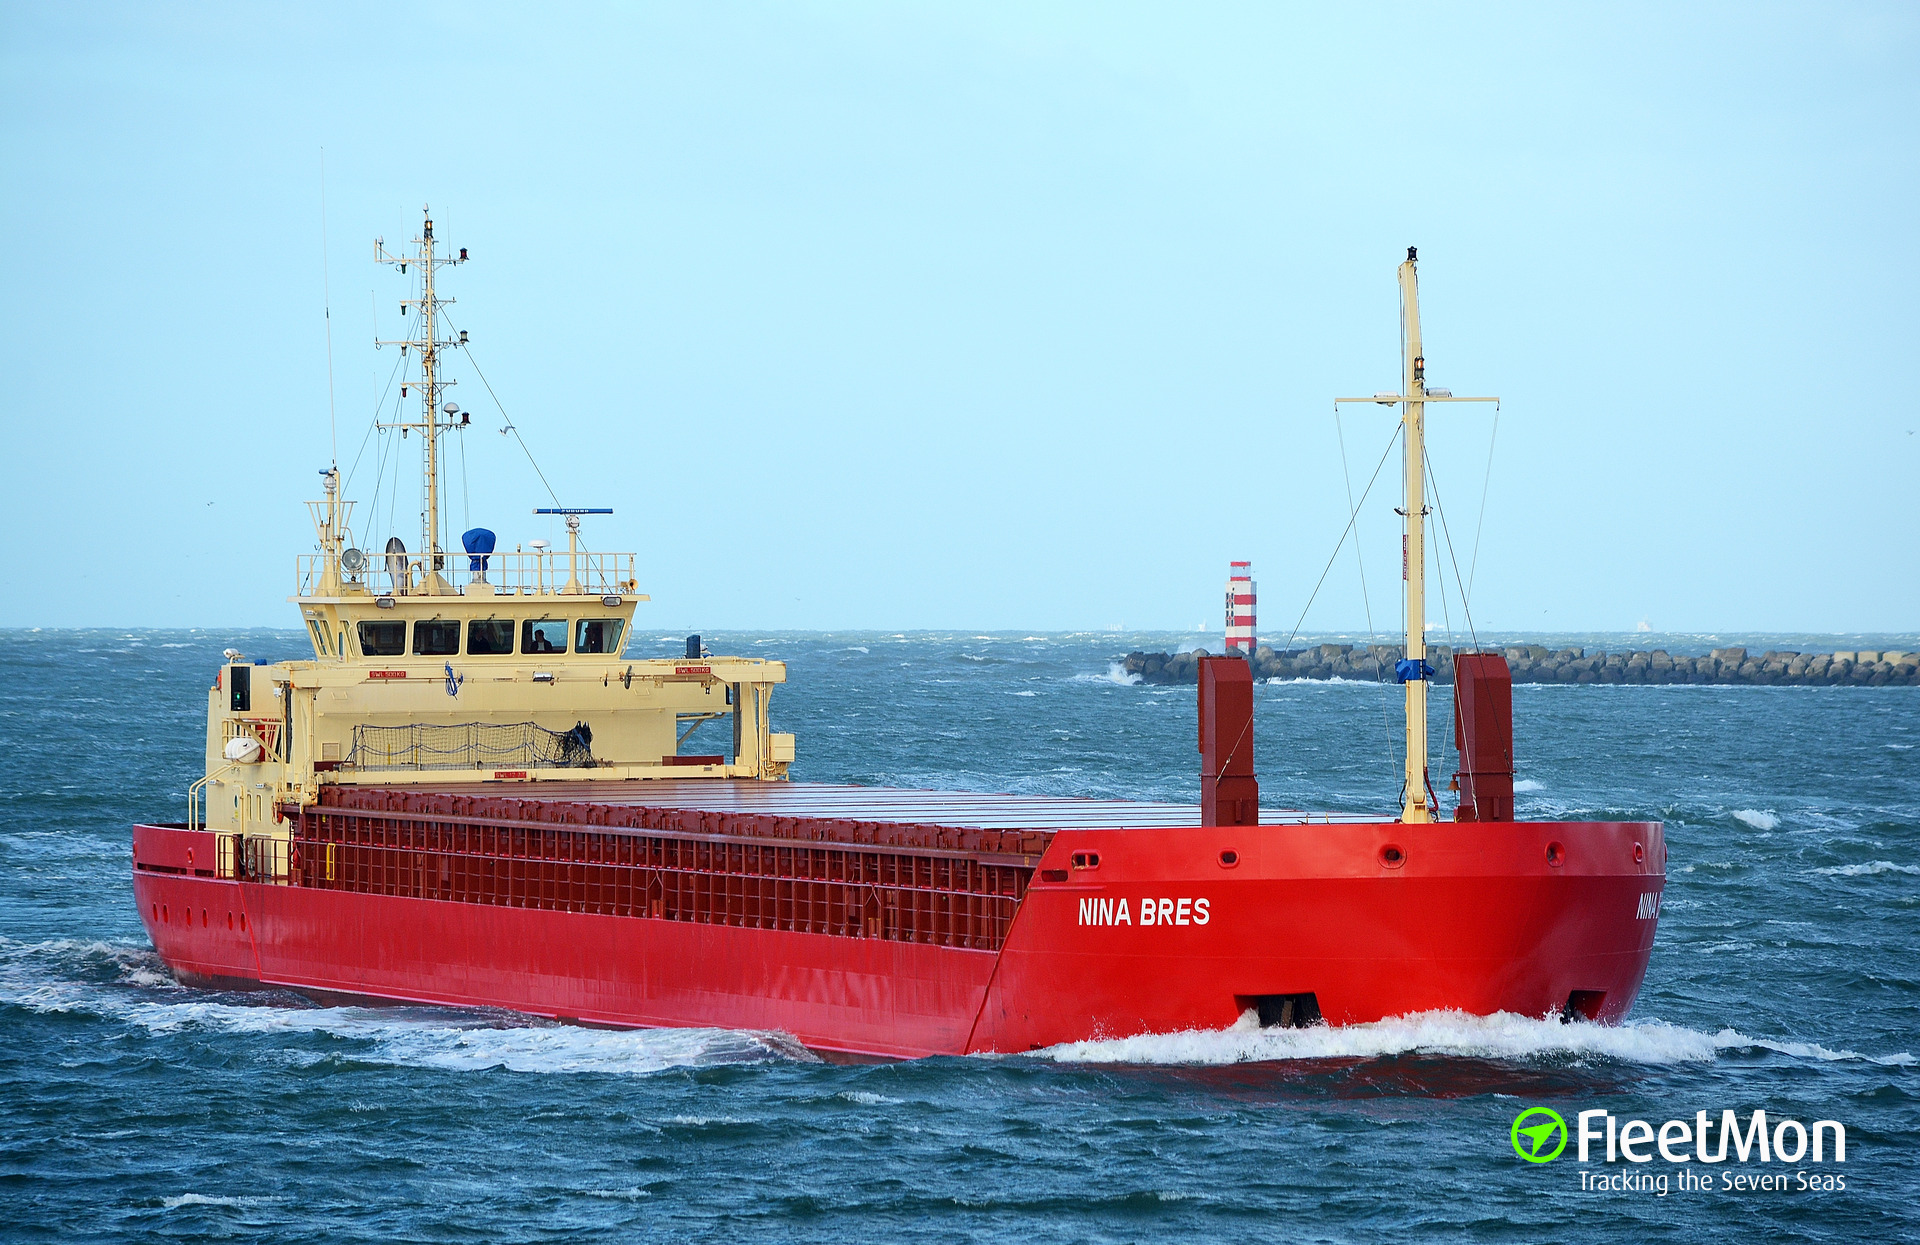 NINA BRES barred traffic in Kiel Canal